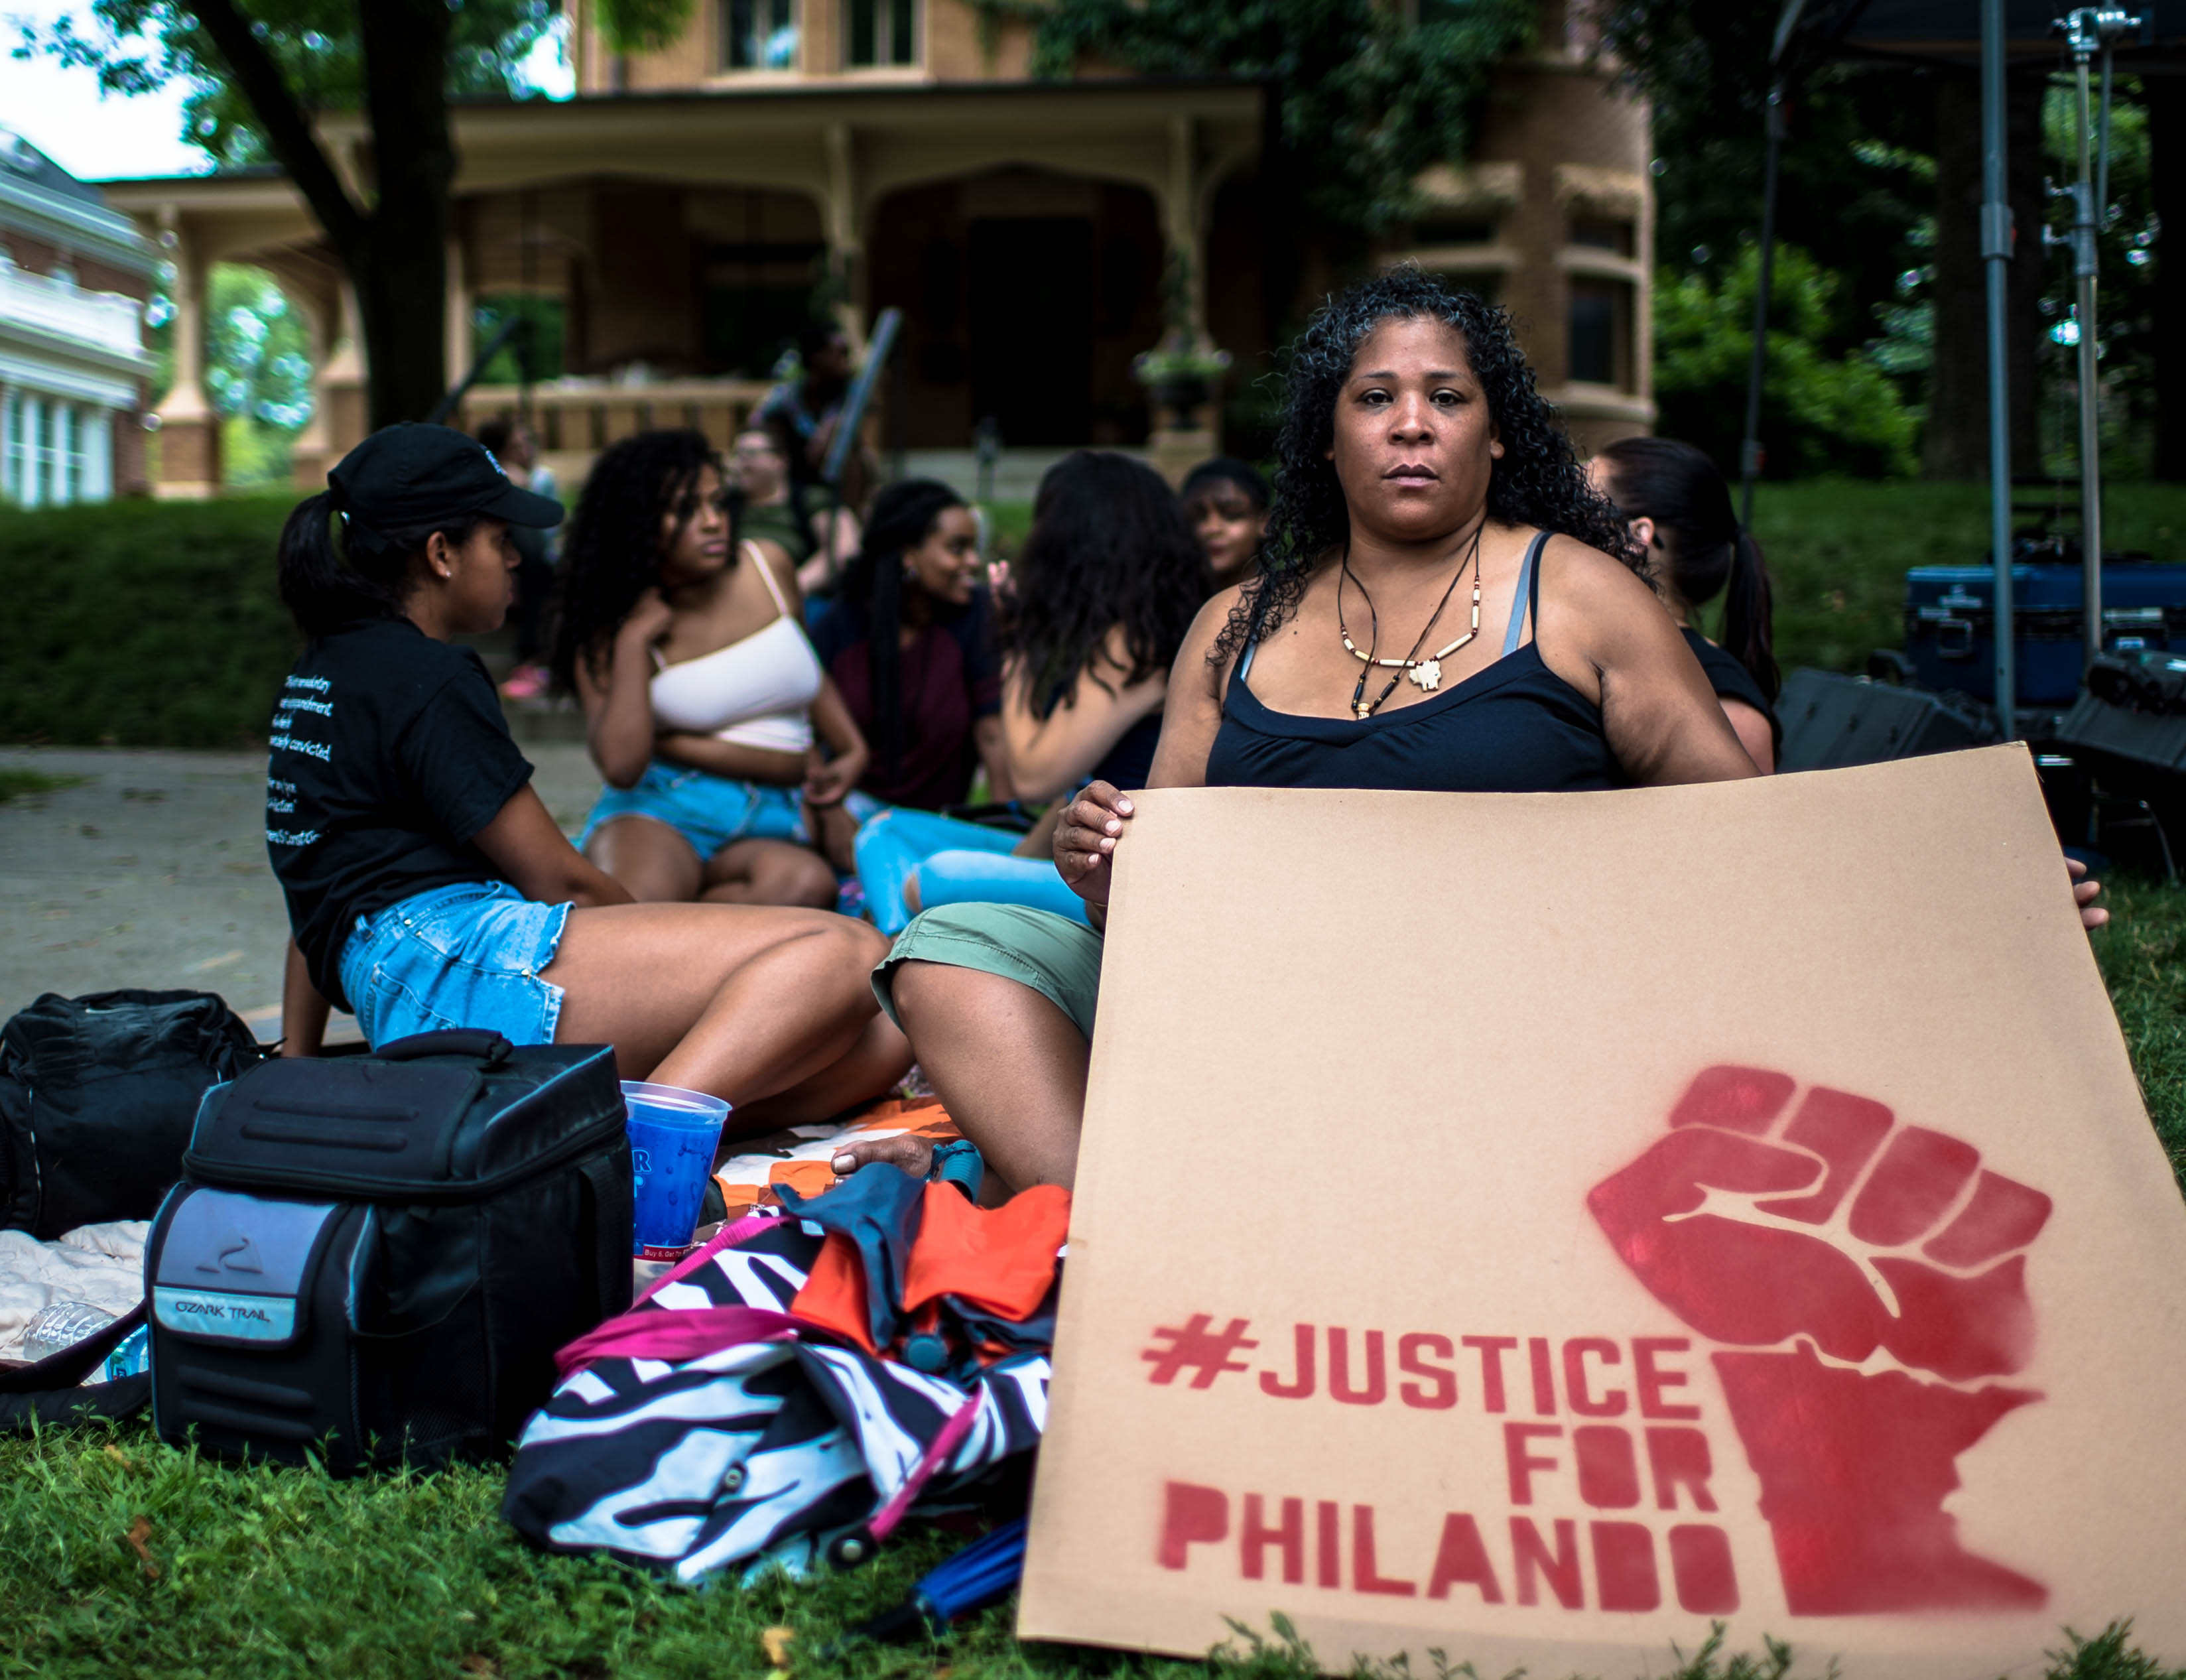 """A group of black femmes sit on a lawn in front of a house. One of them faces the camera, holding a large sign that says, """"#JustriceForPhilando."""" The sign has the black power fist with the state of Minnesota as the wrist painted on it."""